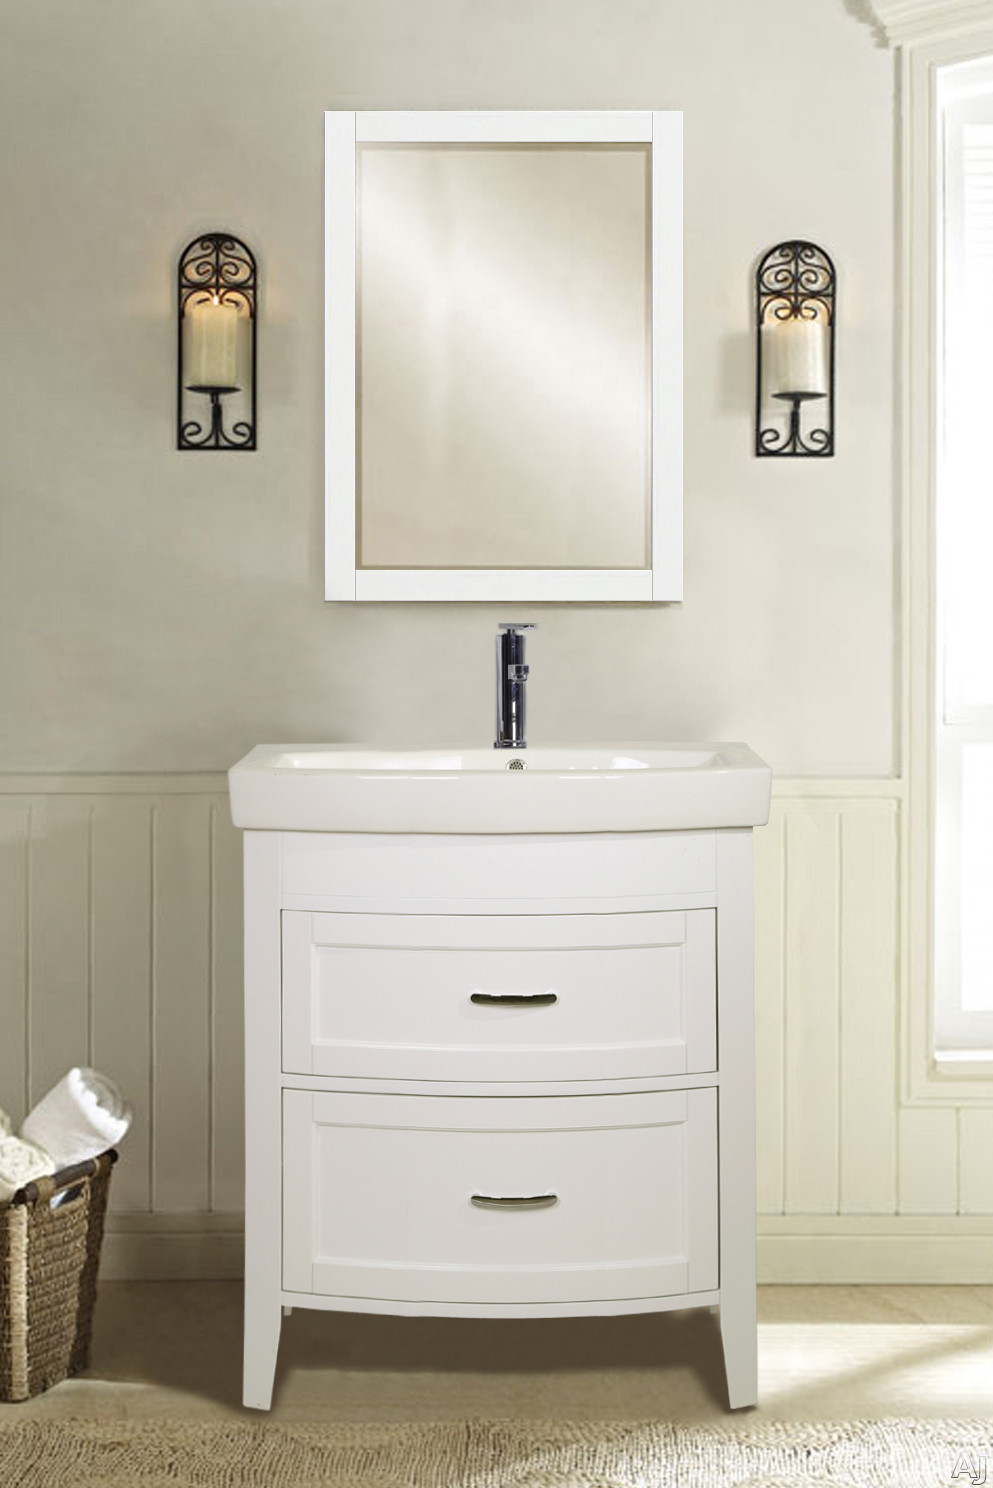 Empire Industries Arch Collection A2102W 20 Inch Freestanding Vanity with 2 Drawers for Your Royale Collection Ceramic Drop In Bathroom Sink White